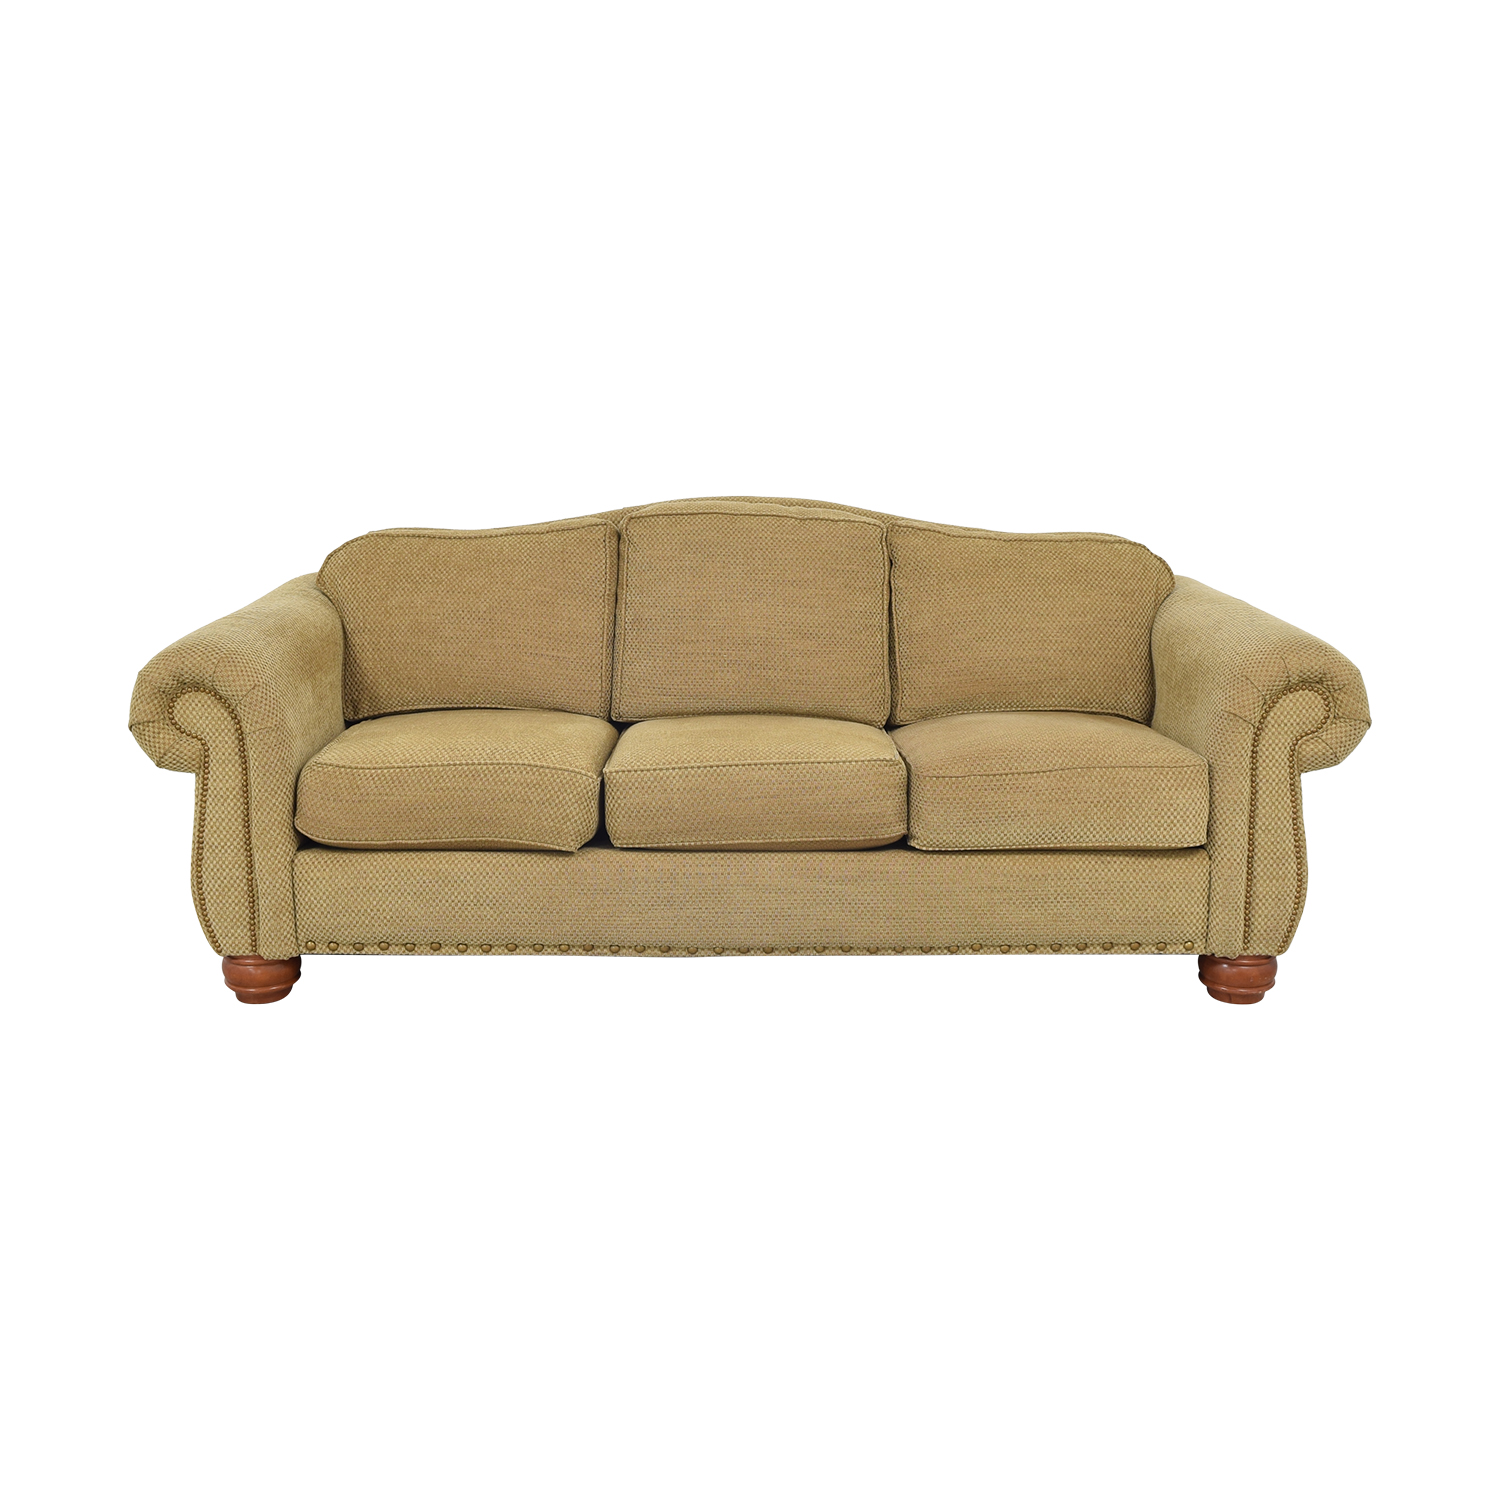 La-Z-Boy La-Z-Boy Three Cushion Sofa used